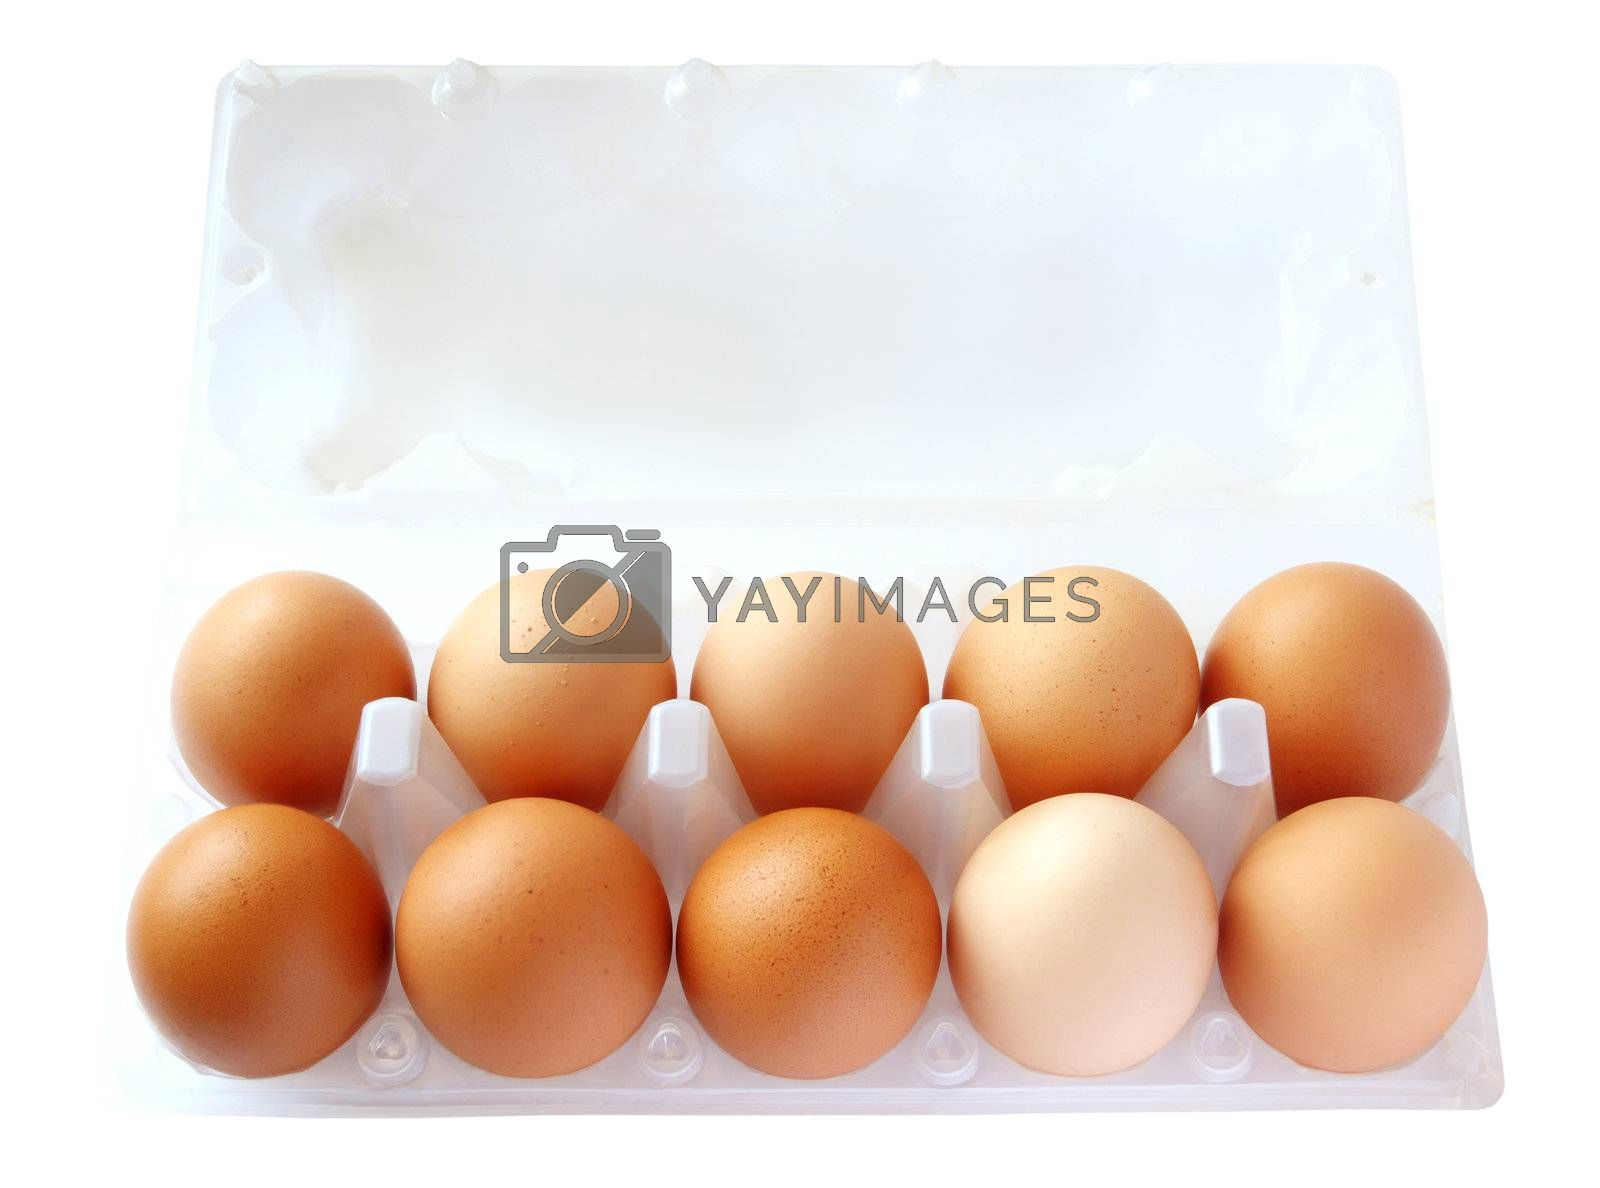 eggs in packing on the white background by aptyp_kok